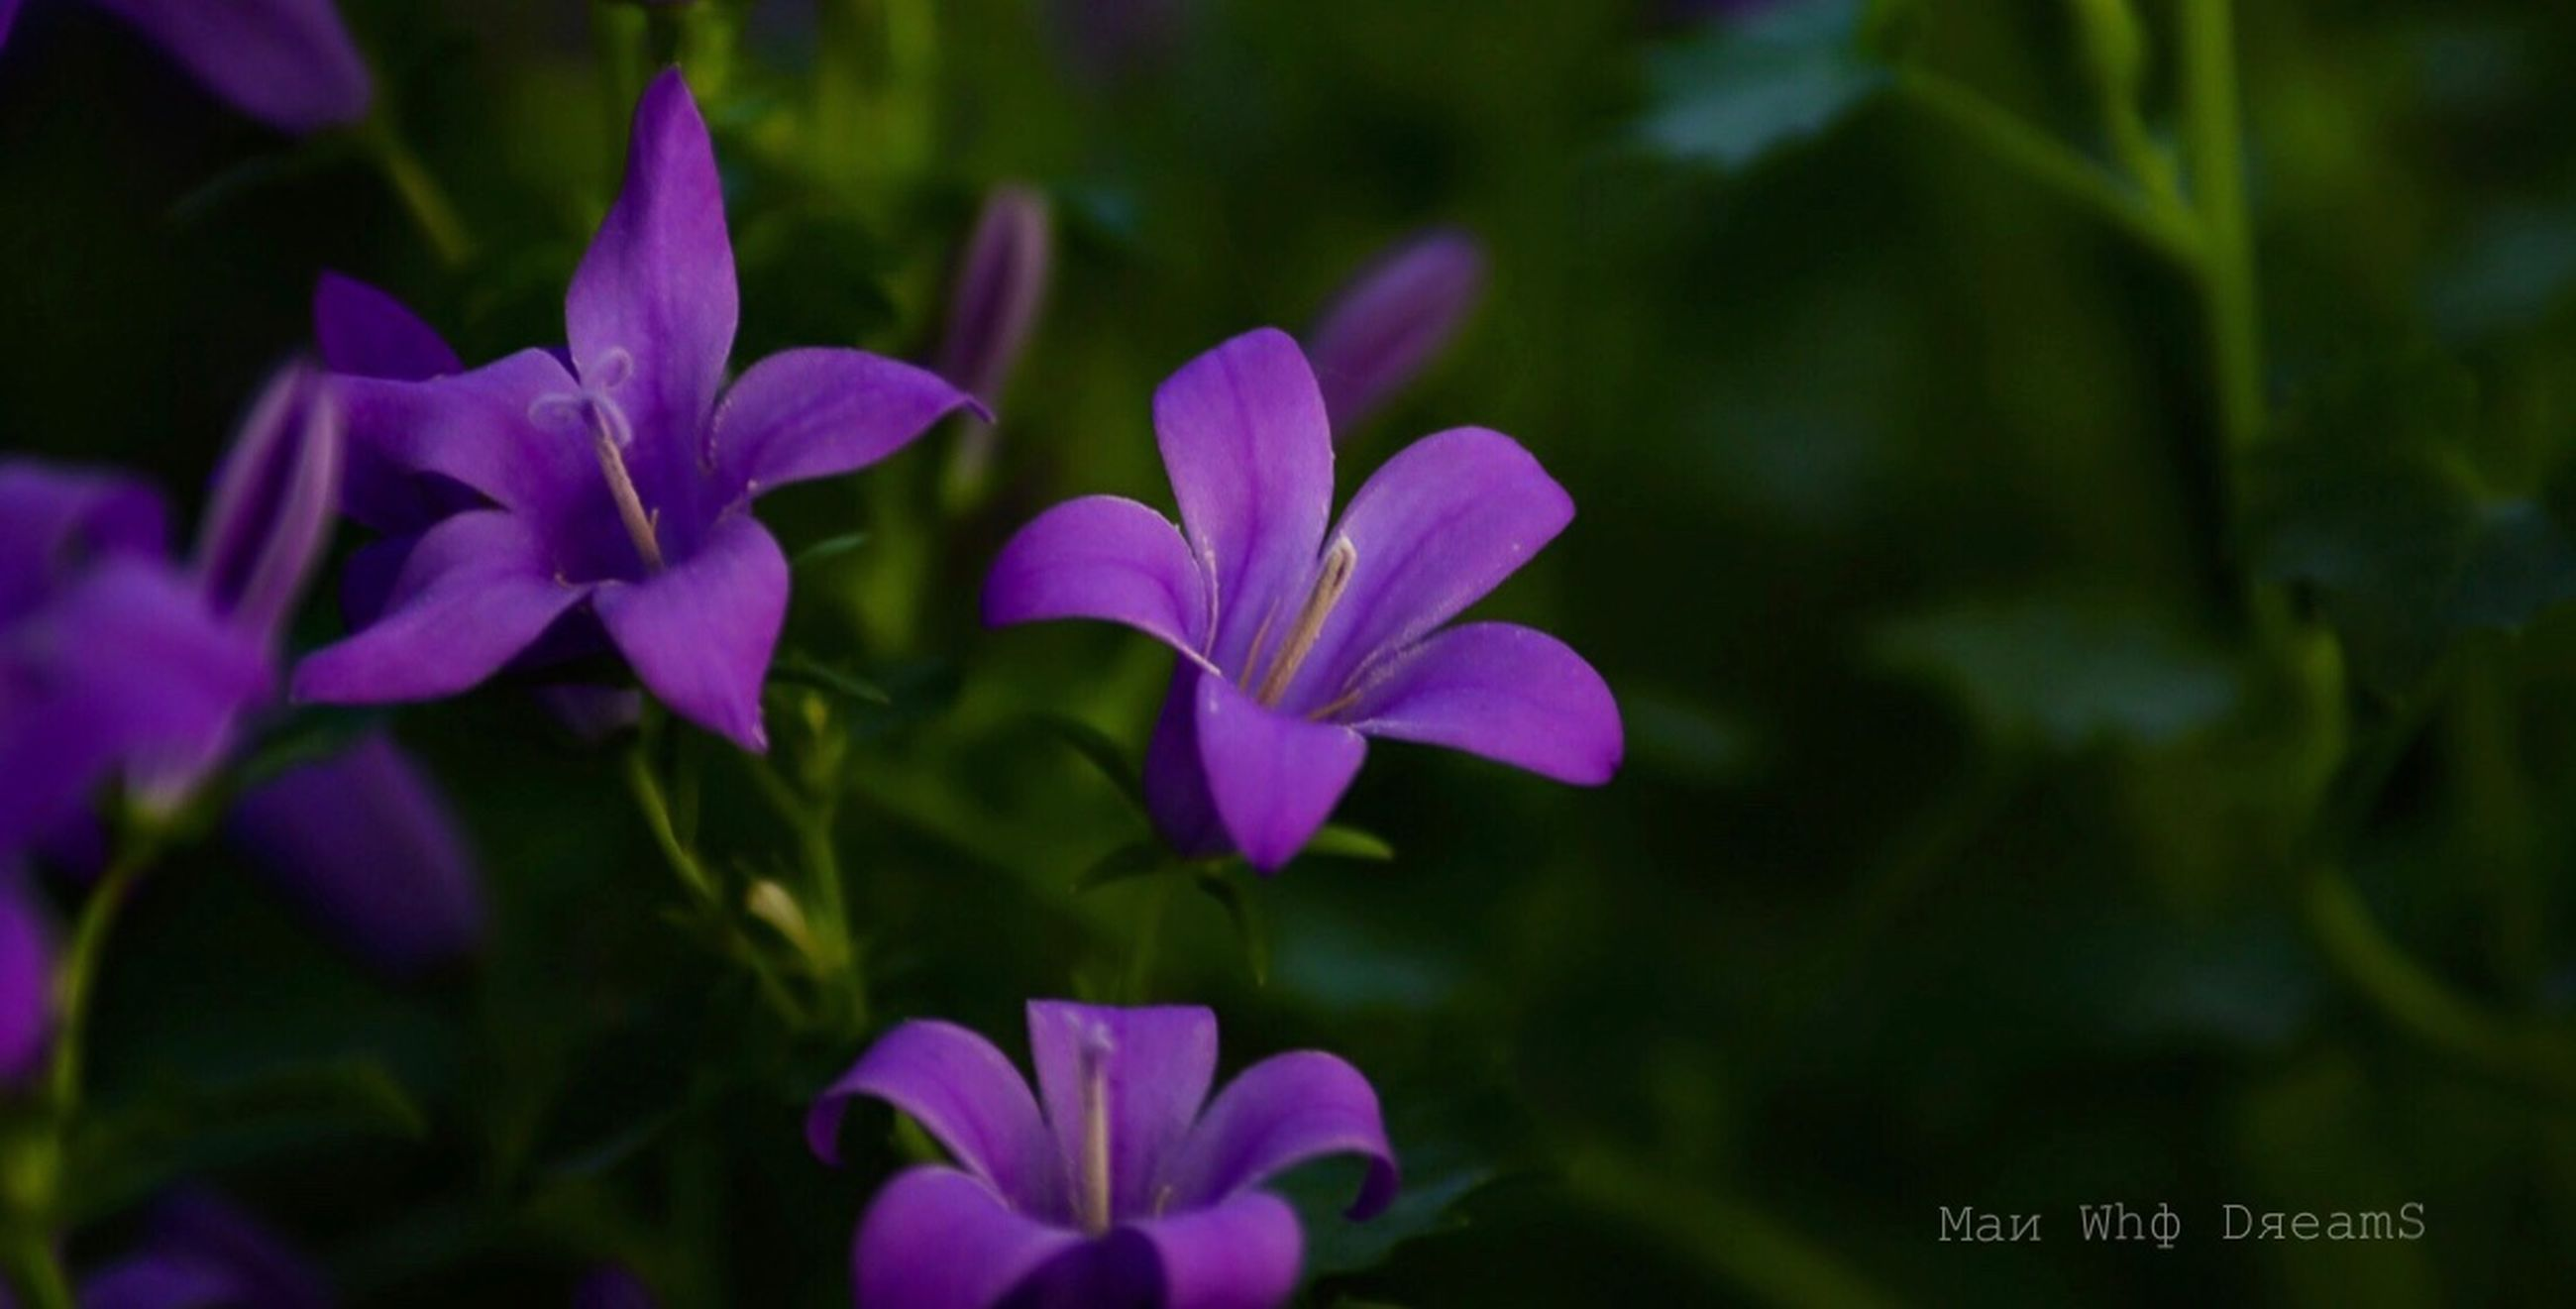 flower, flowering plant, plant, beauty in nature, fragility, vulnerability, freshness, petal, close-up, growth, purple, inflorescence, flower head, nature, no people, focus on foreground, day, selective focus, outdoors, plant part